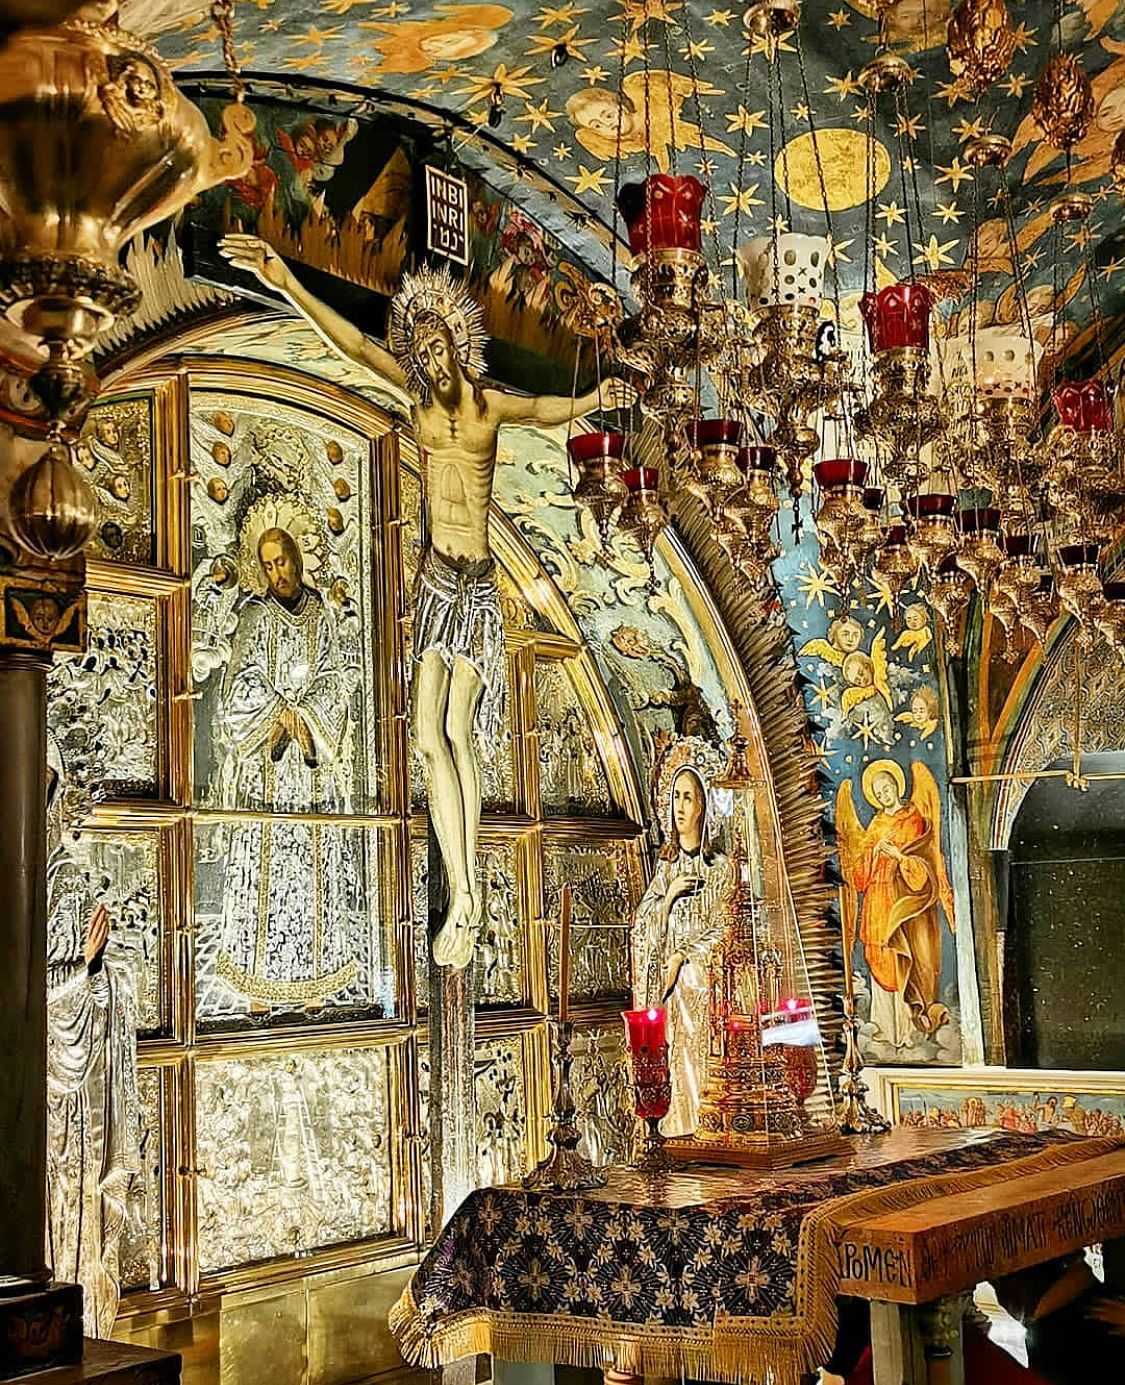 Calvary or Golgotha, the spot where Jesus of Nazareth was believed to have been crucified.